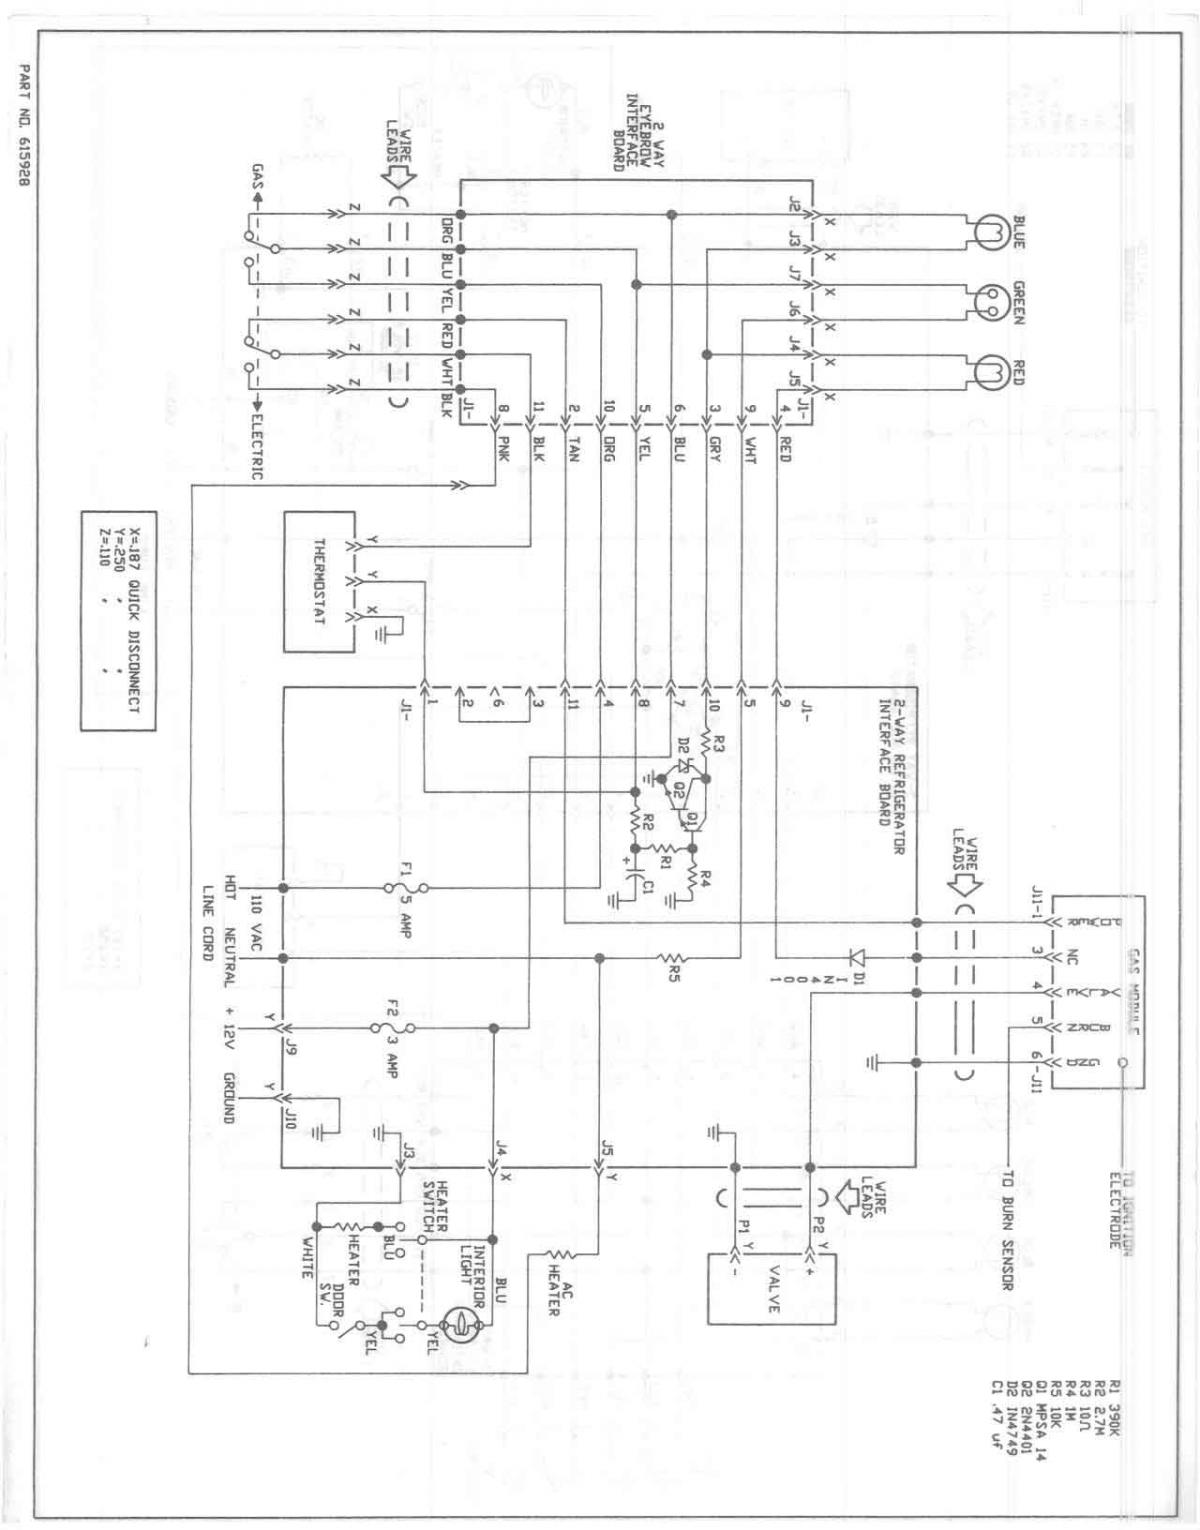 Dometic Refrigerator Wiring Diagram